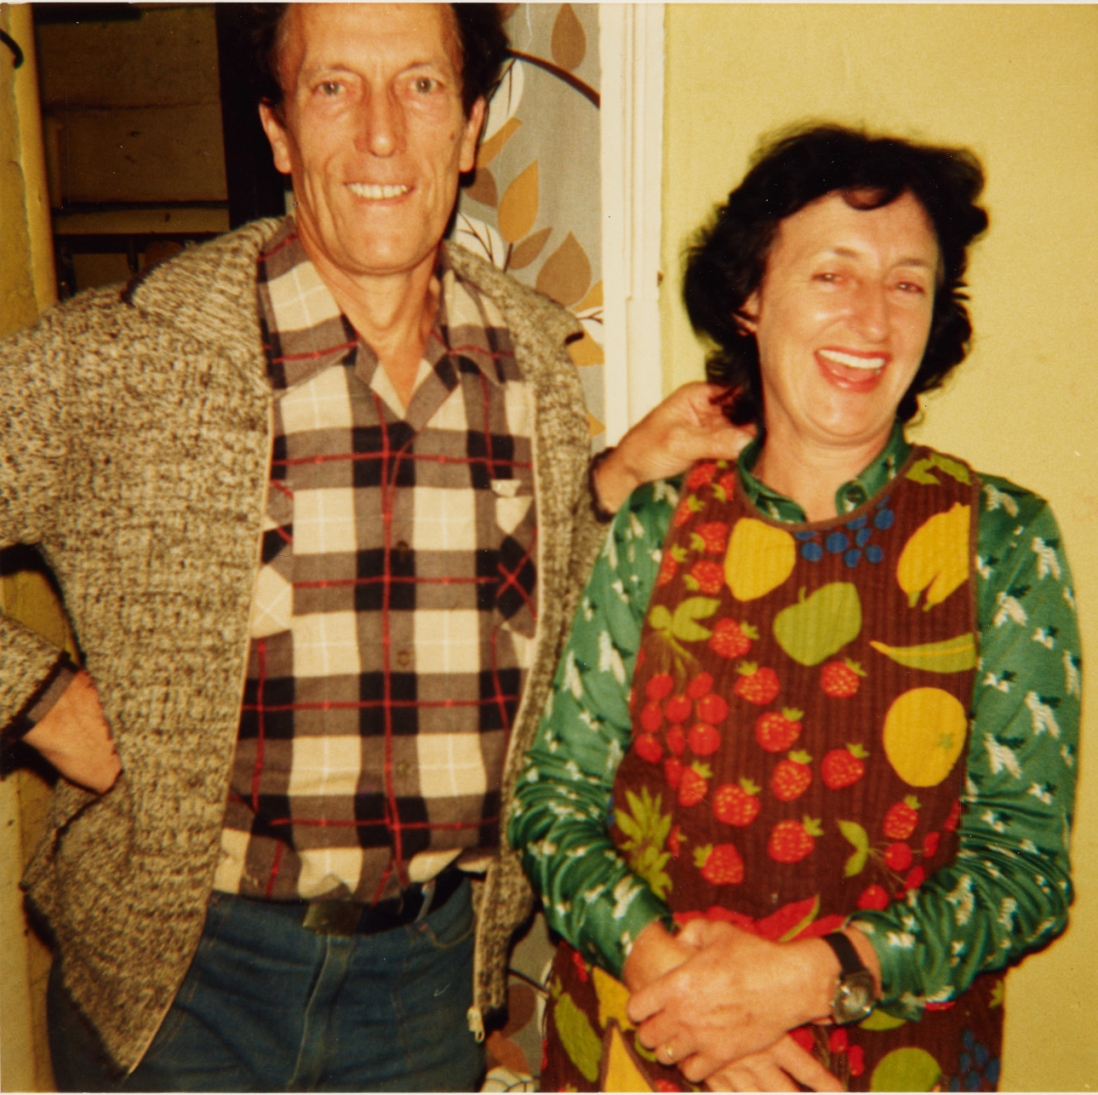 Man wearing cardigan and checked shirt (left) with woman wearing colourful top (right).